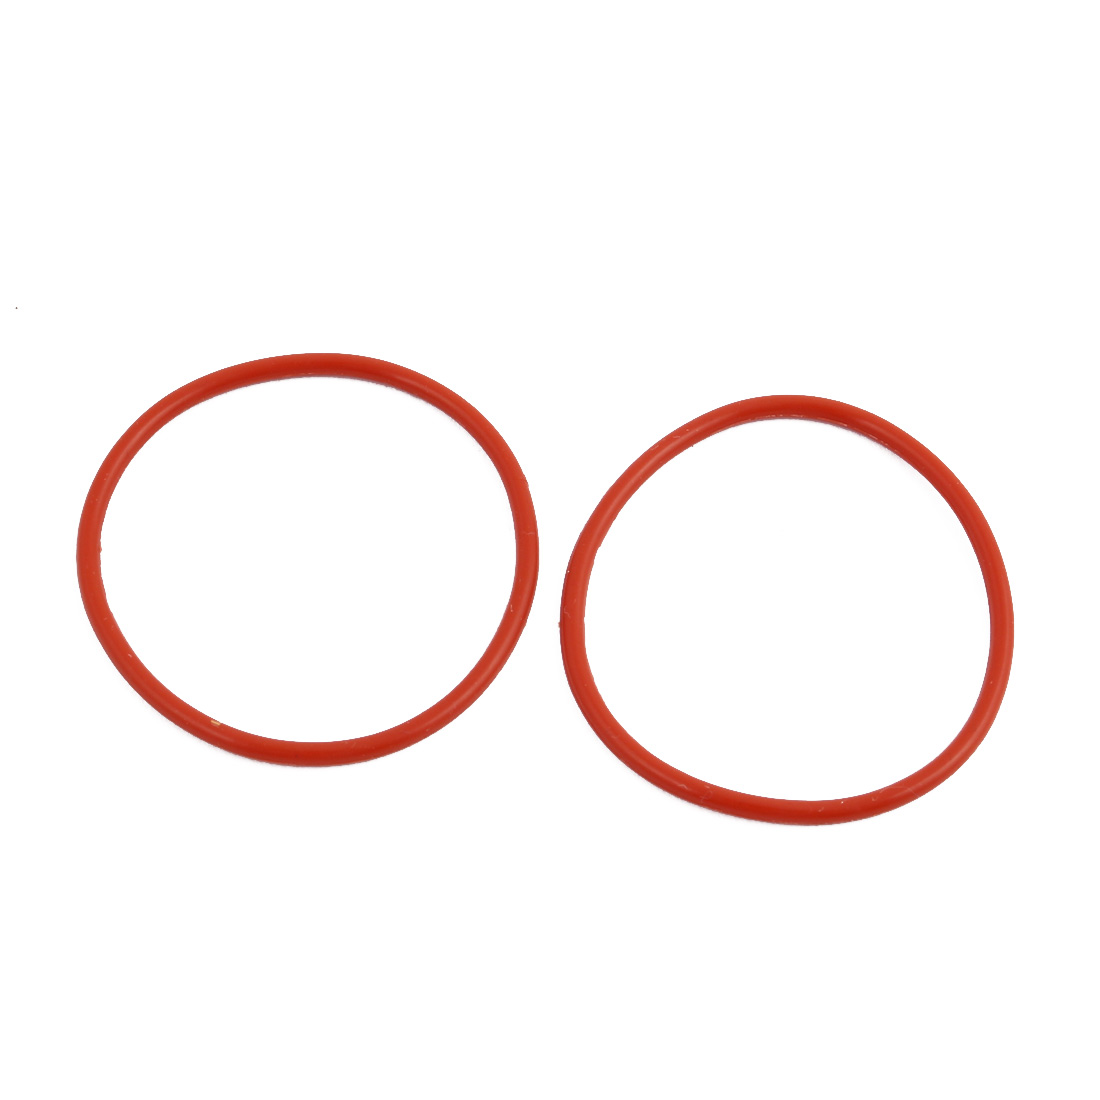 2pcs Red Round Nitrile Butadiene Rubber NBR O-Ring 40mm OD 1.9mm Width